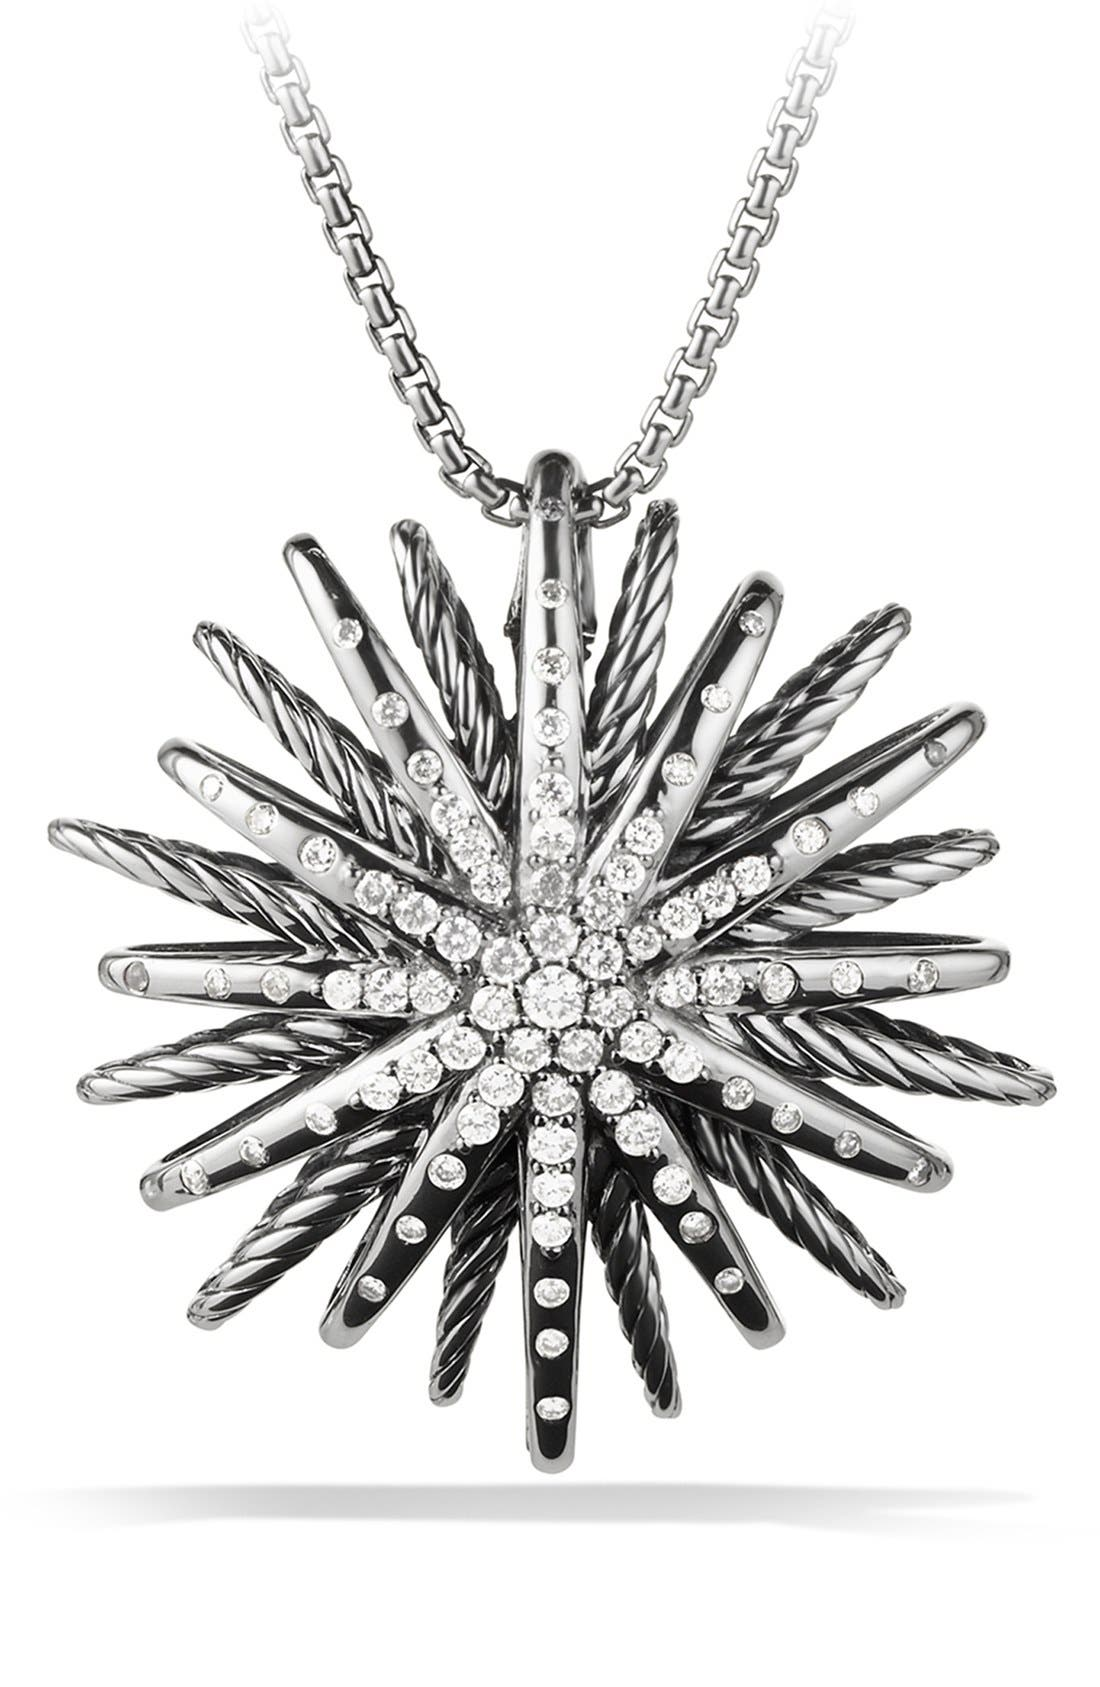 David Yurman 'Starburst' Large Pendant with Diamonds on Chain